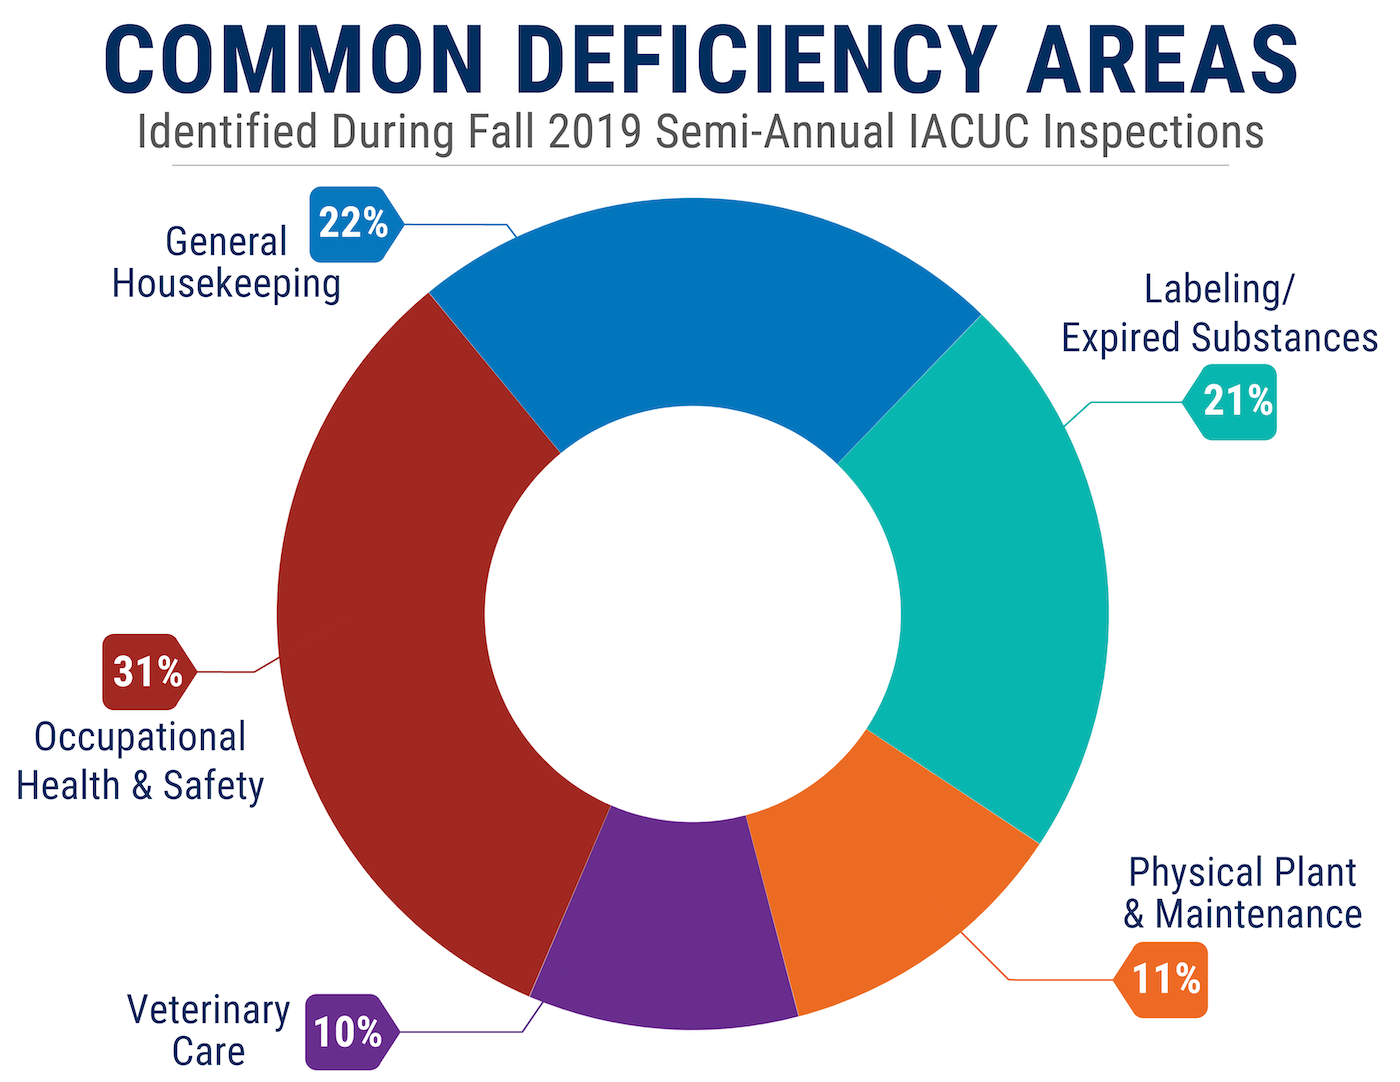 Donut chart outlining common deficiency areas found during Fall 2019 semi-annual IACUC facility inspections